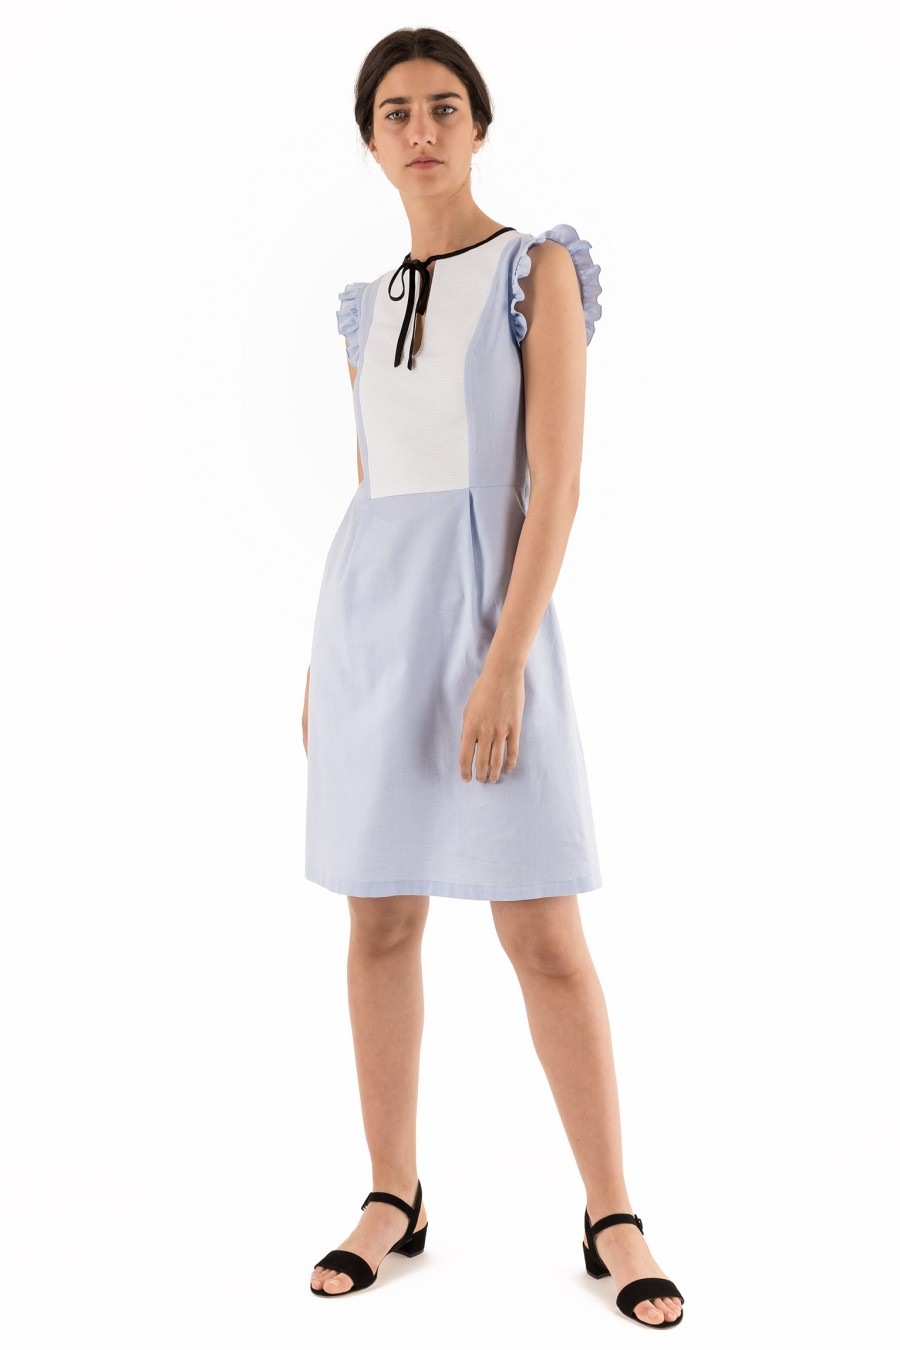 Light blue and white dress